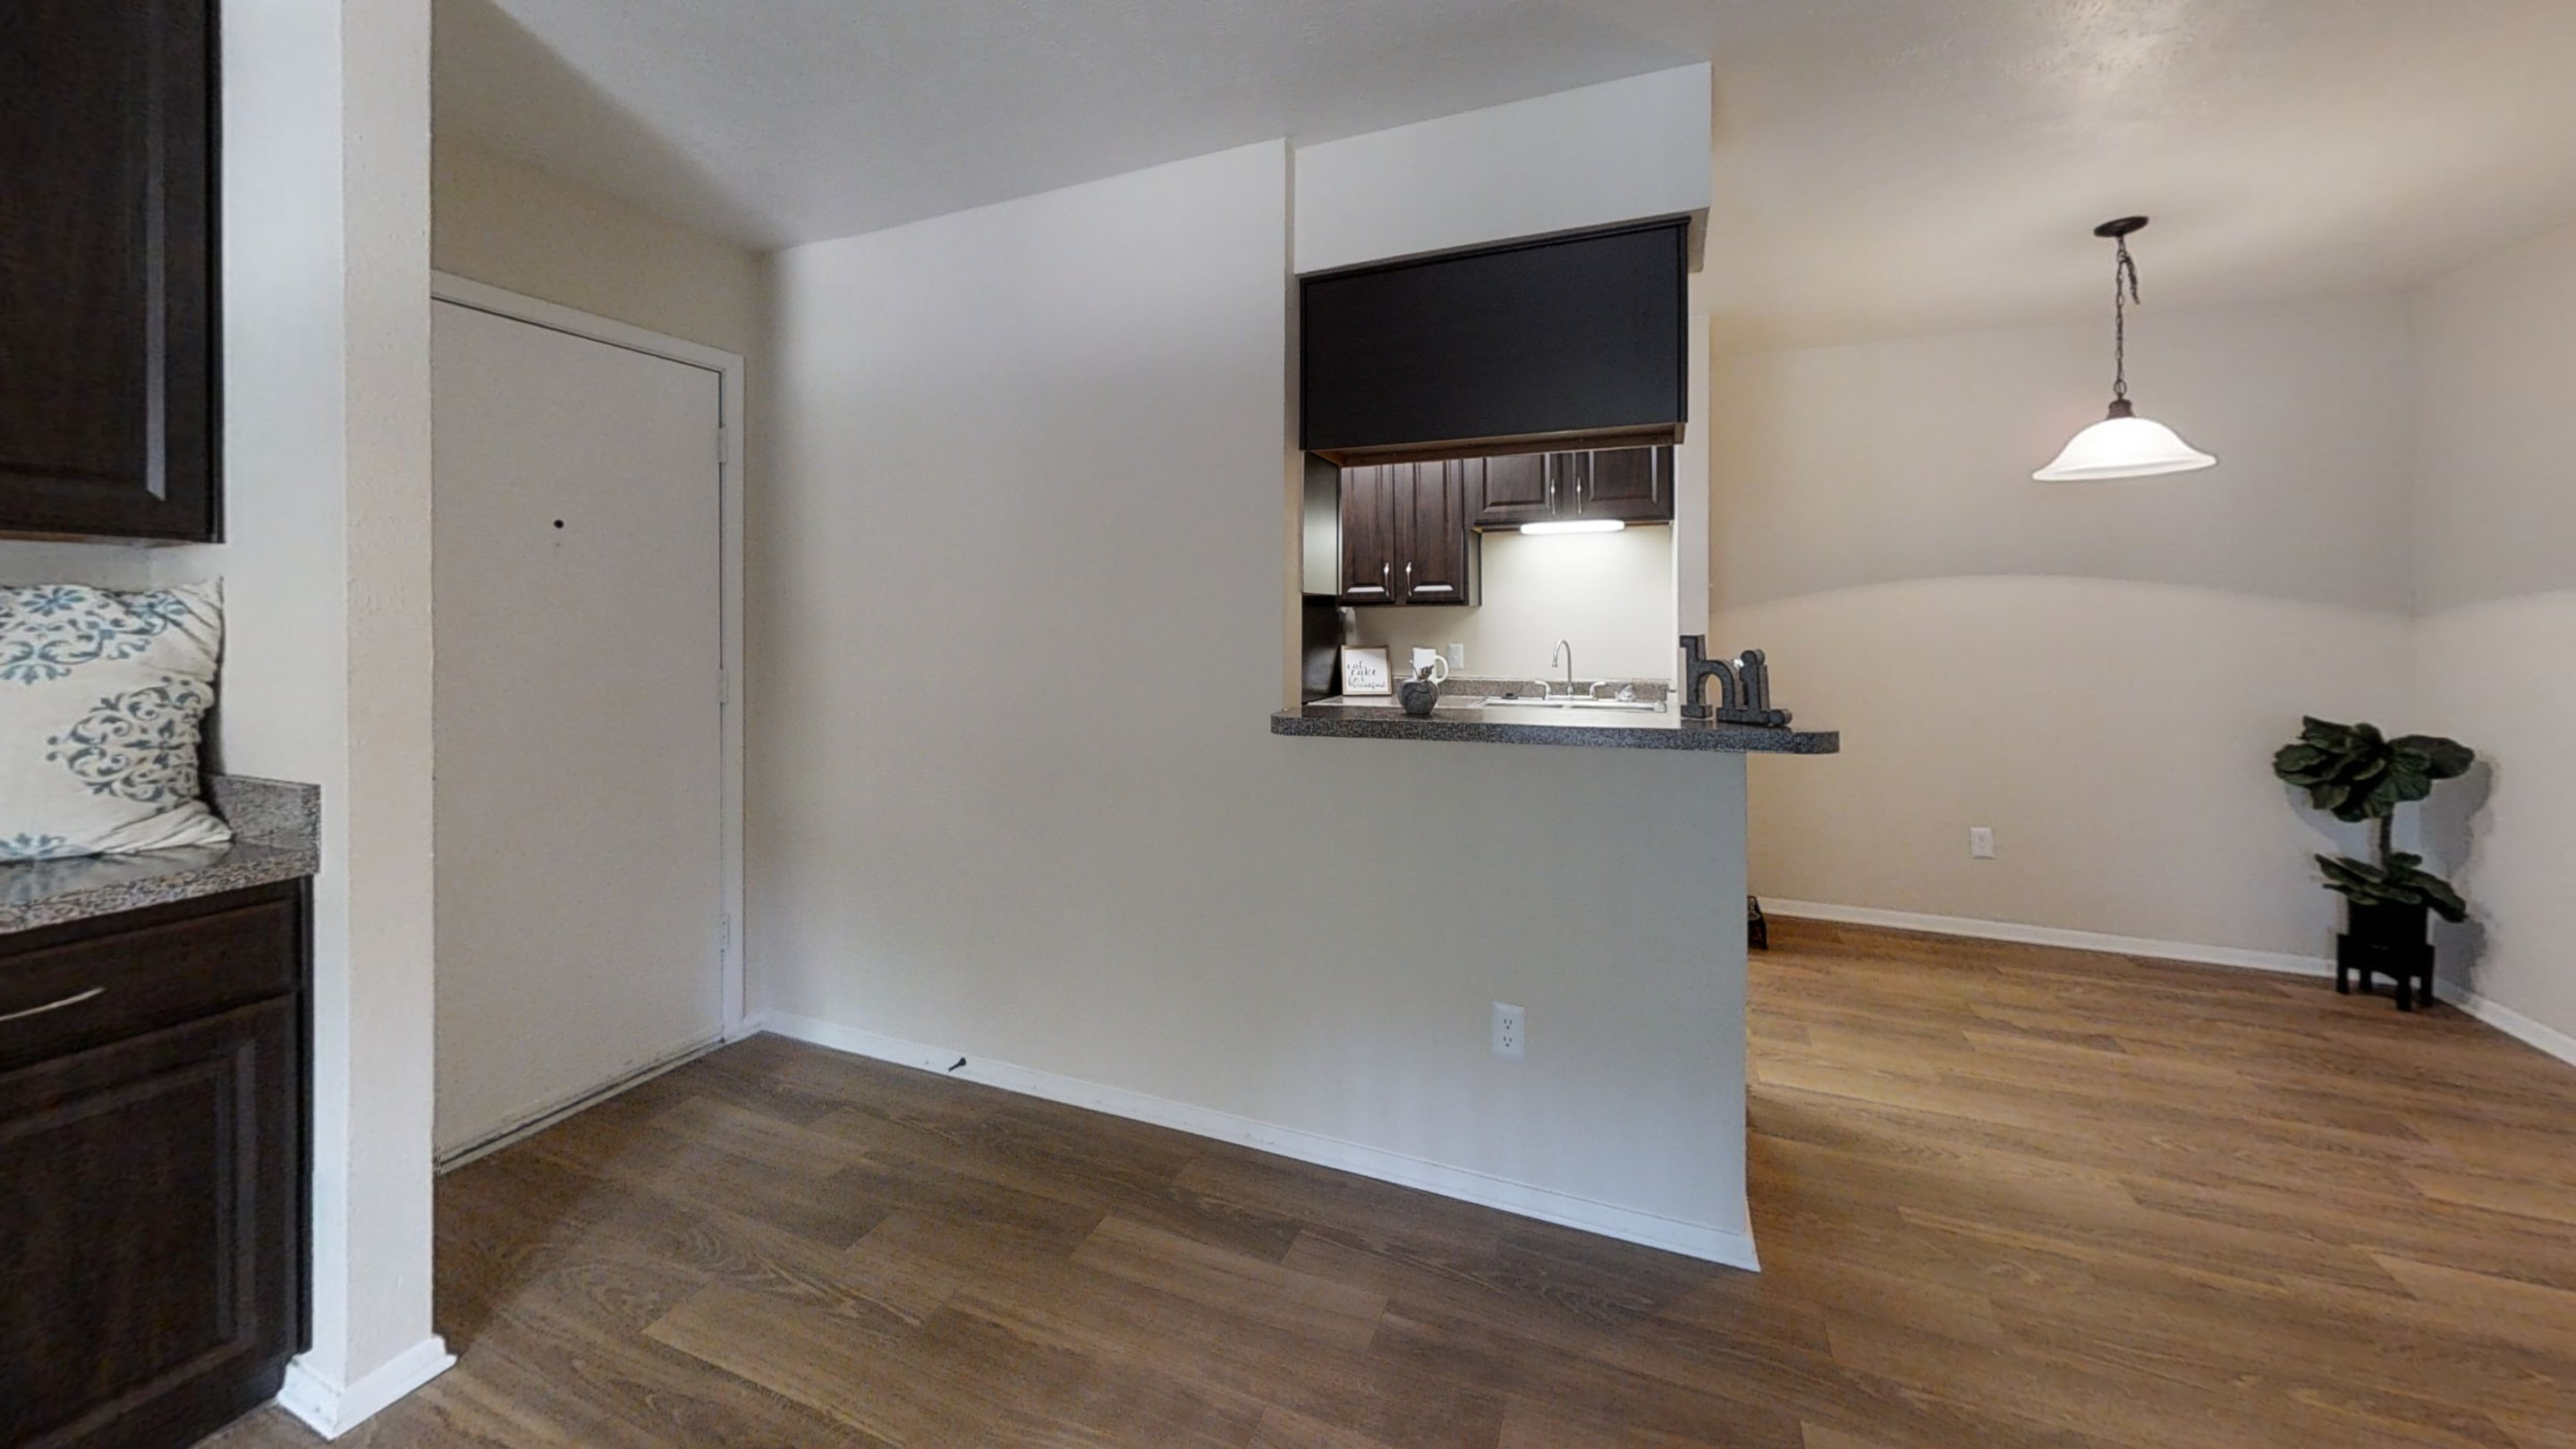 22 Ideal Hardwood Floor Installation Dallas 2021 free download hardwood floor installation dallas of 100 best apartments in fort worth tx with pictures for 9990ae1e7c06fcd90d1b3d7f07839569